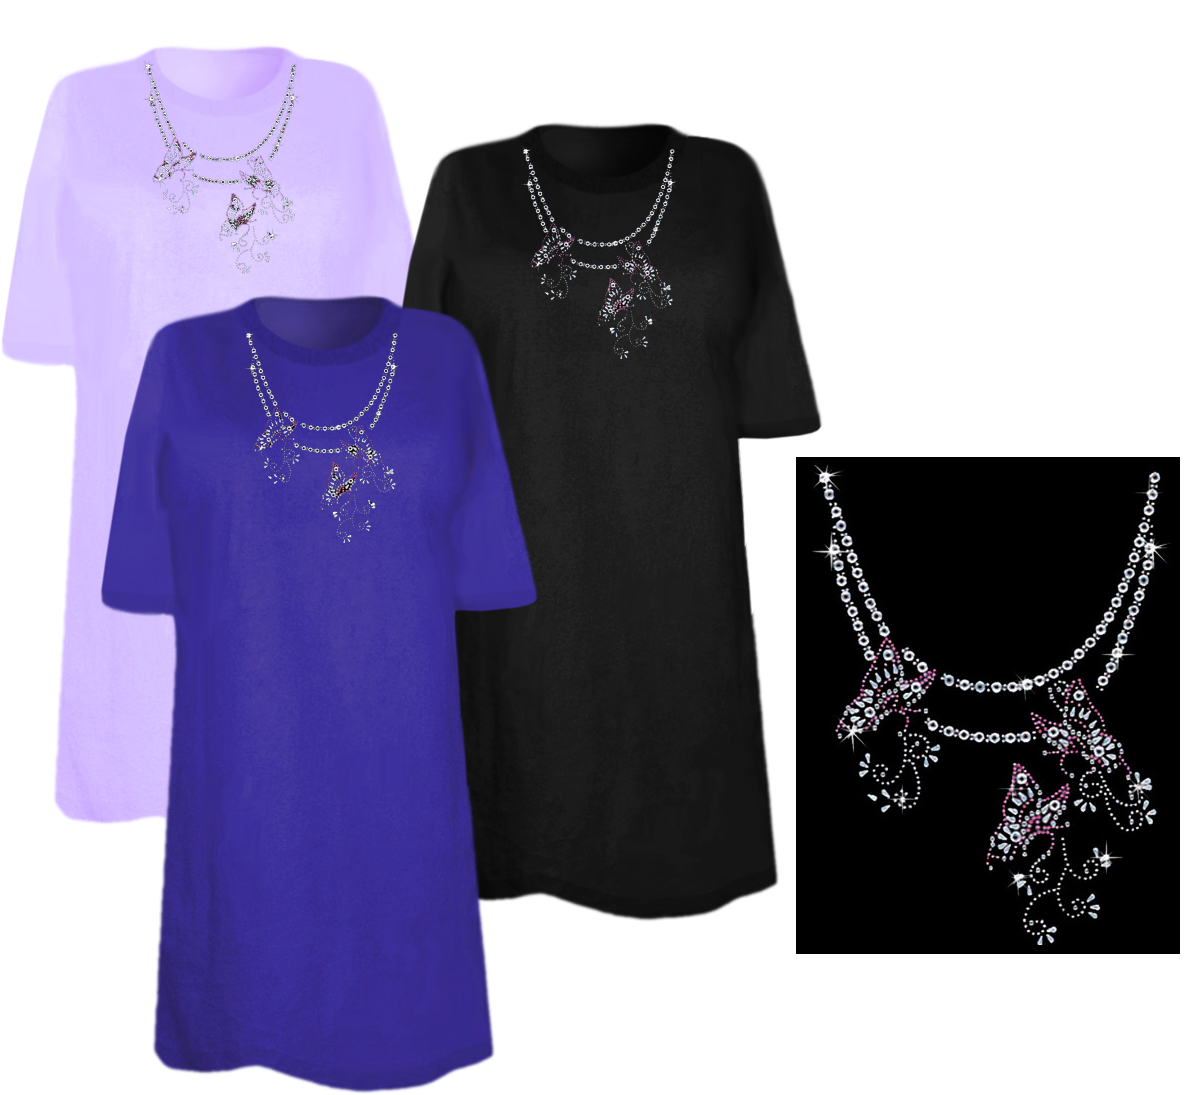 Sale butterfly chain neckline sparkly rhinestud for 3x shirts on sale